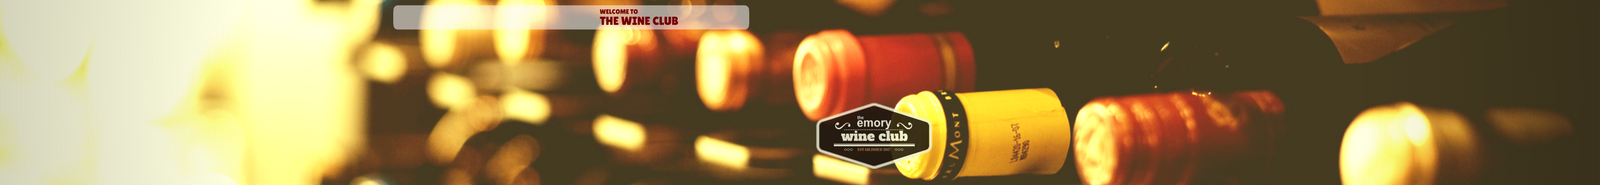 WINE CLUB WEBSITE PAGE HEADER (6).png